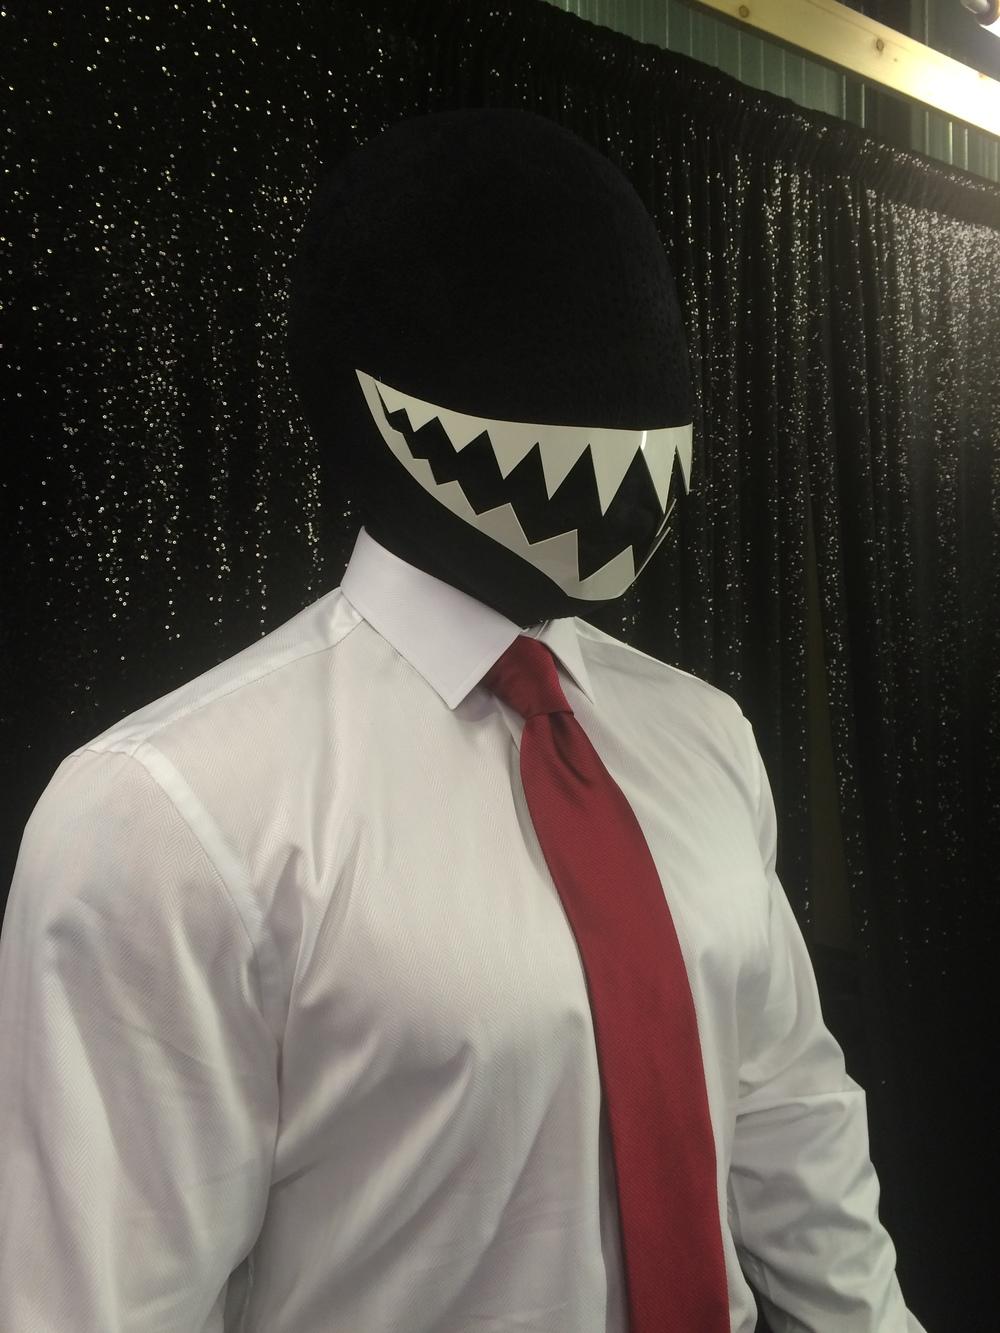 Joker's Bodyguard from Suicide Squad (2016)